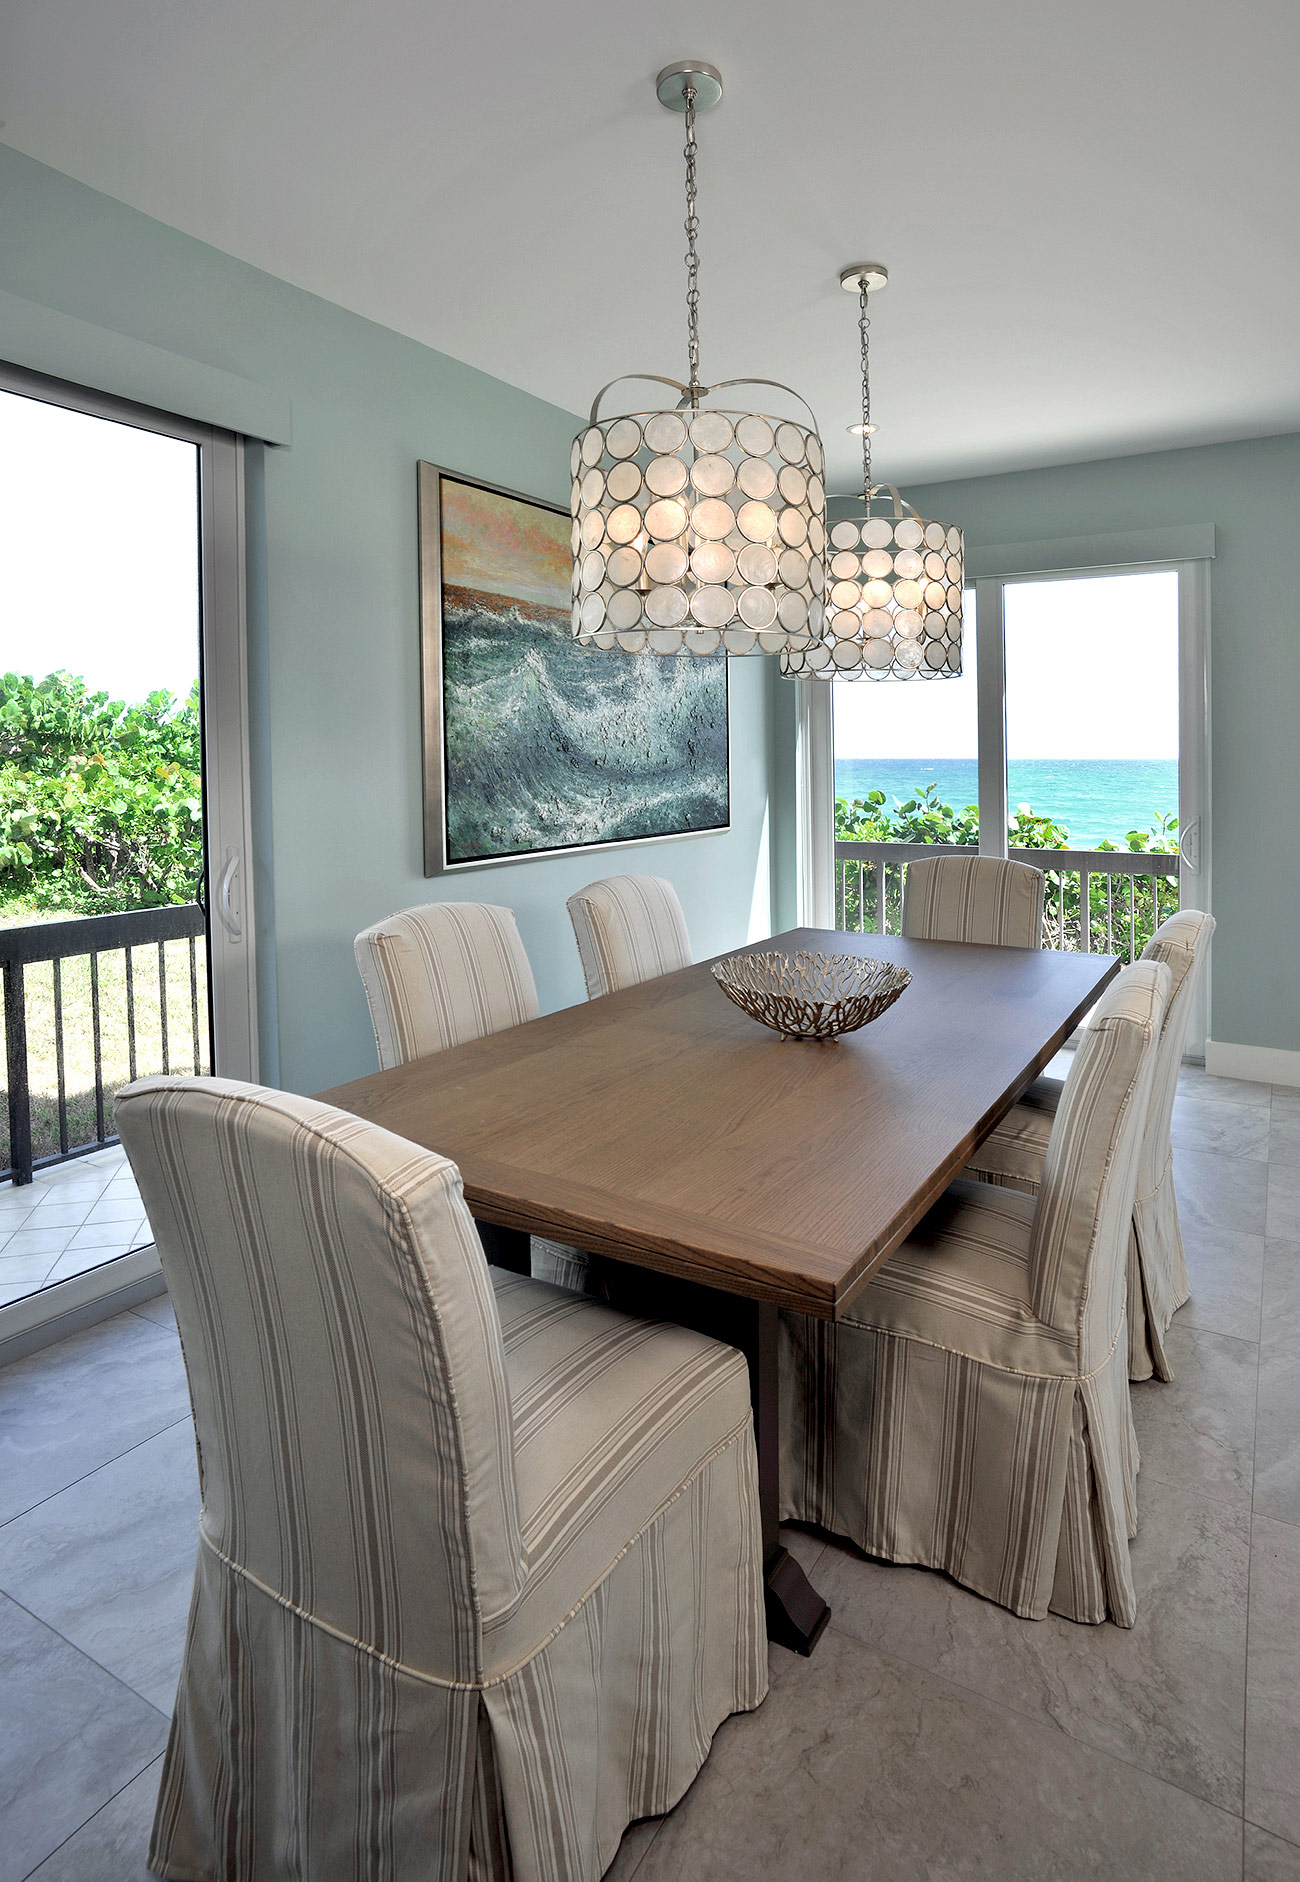 Dining room of beach house showing with beige and sea blues palette for furnishings and fixtures